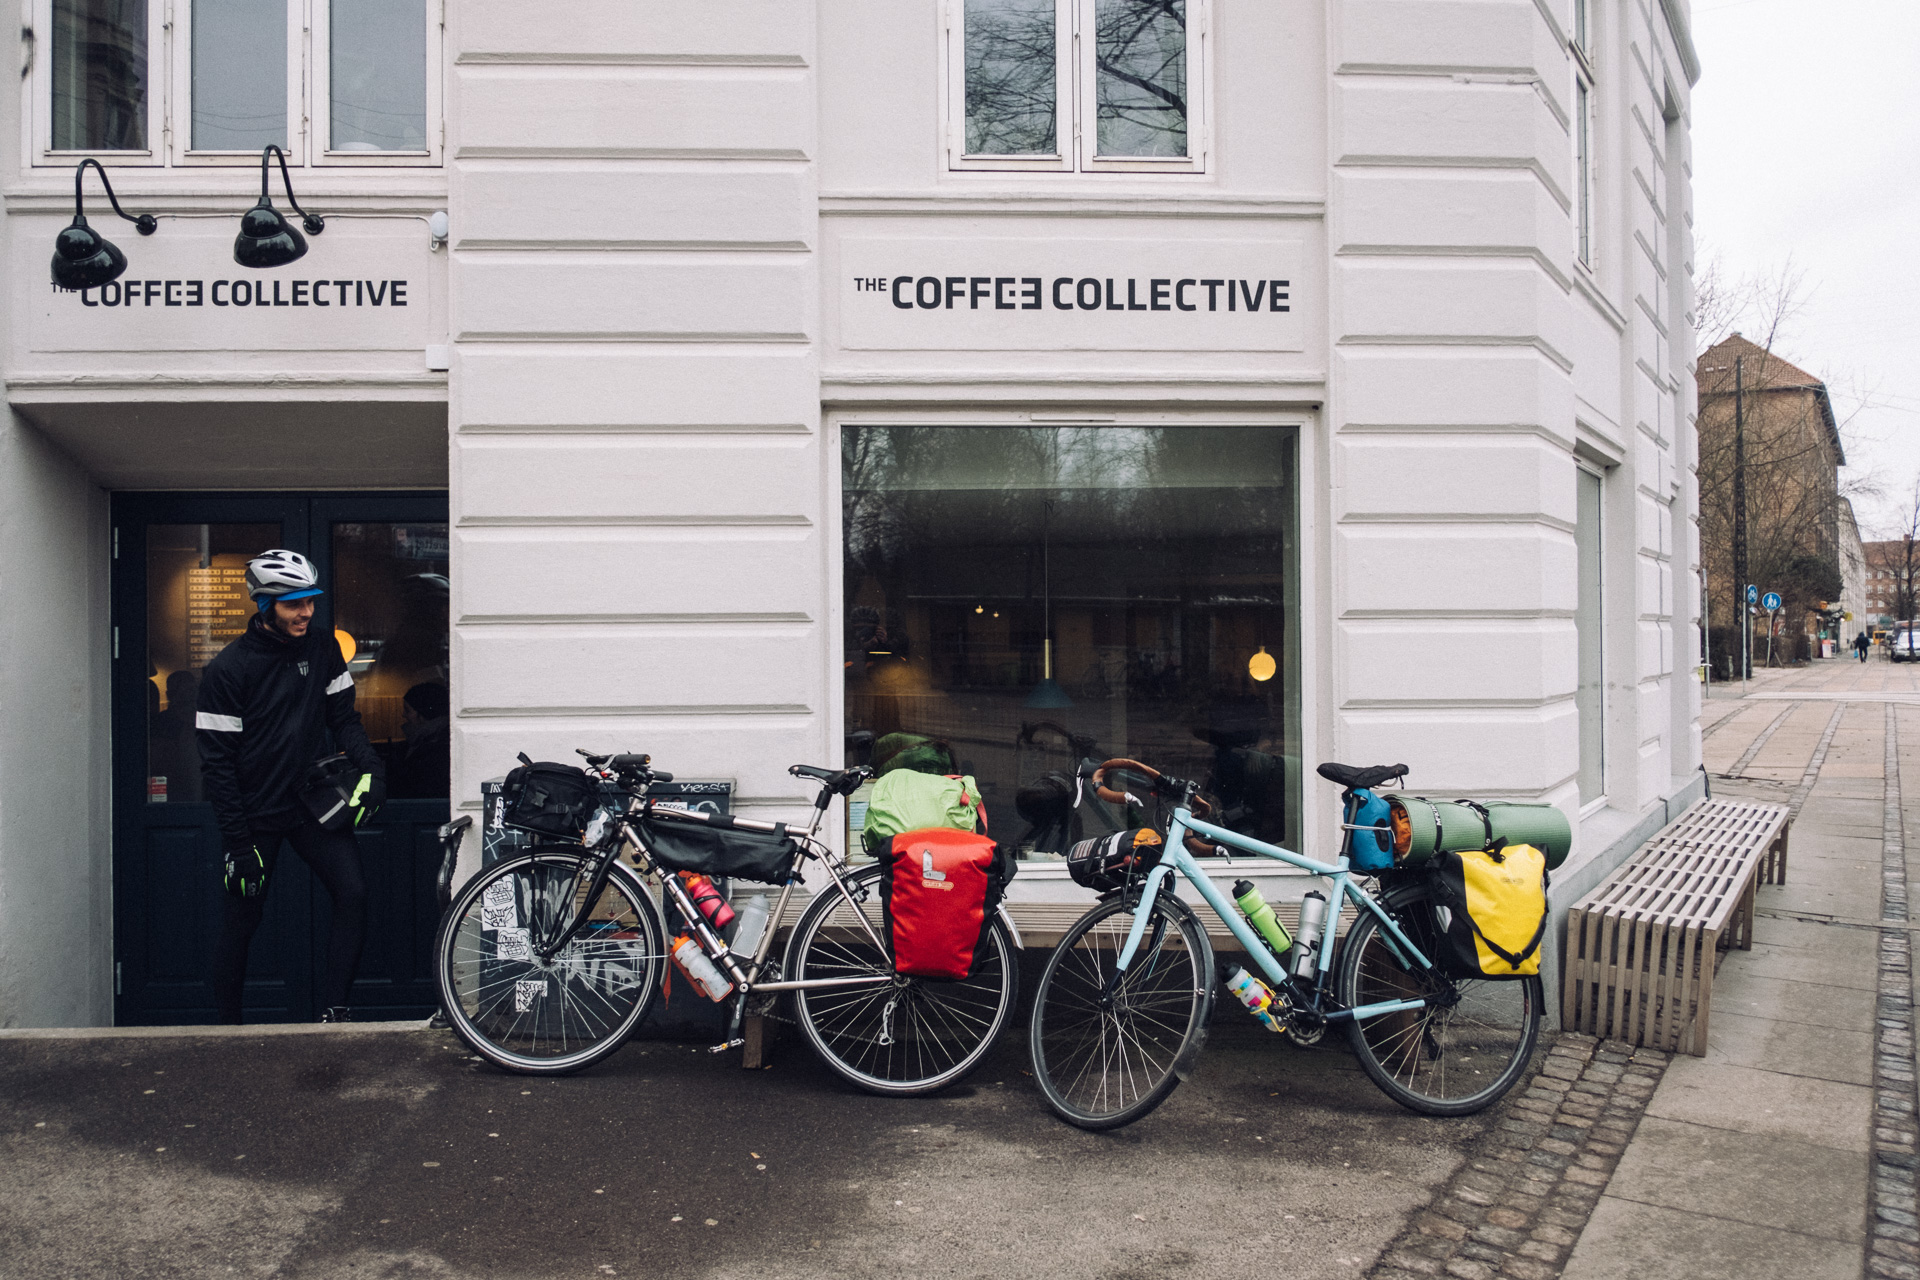 """In Copenhagen, the only thing we do is to get coffee. A shame, but we've been here many times before and """"the road is not going to be cycled on its own"""". To make it back to Oslo on time we have to bike at least 140km every single day."""